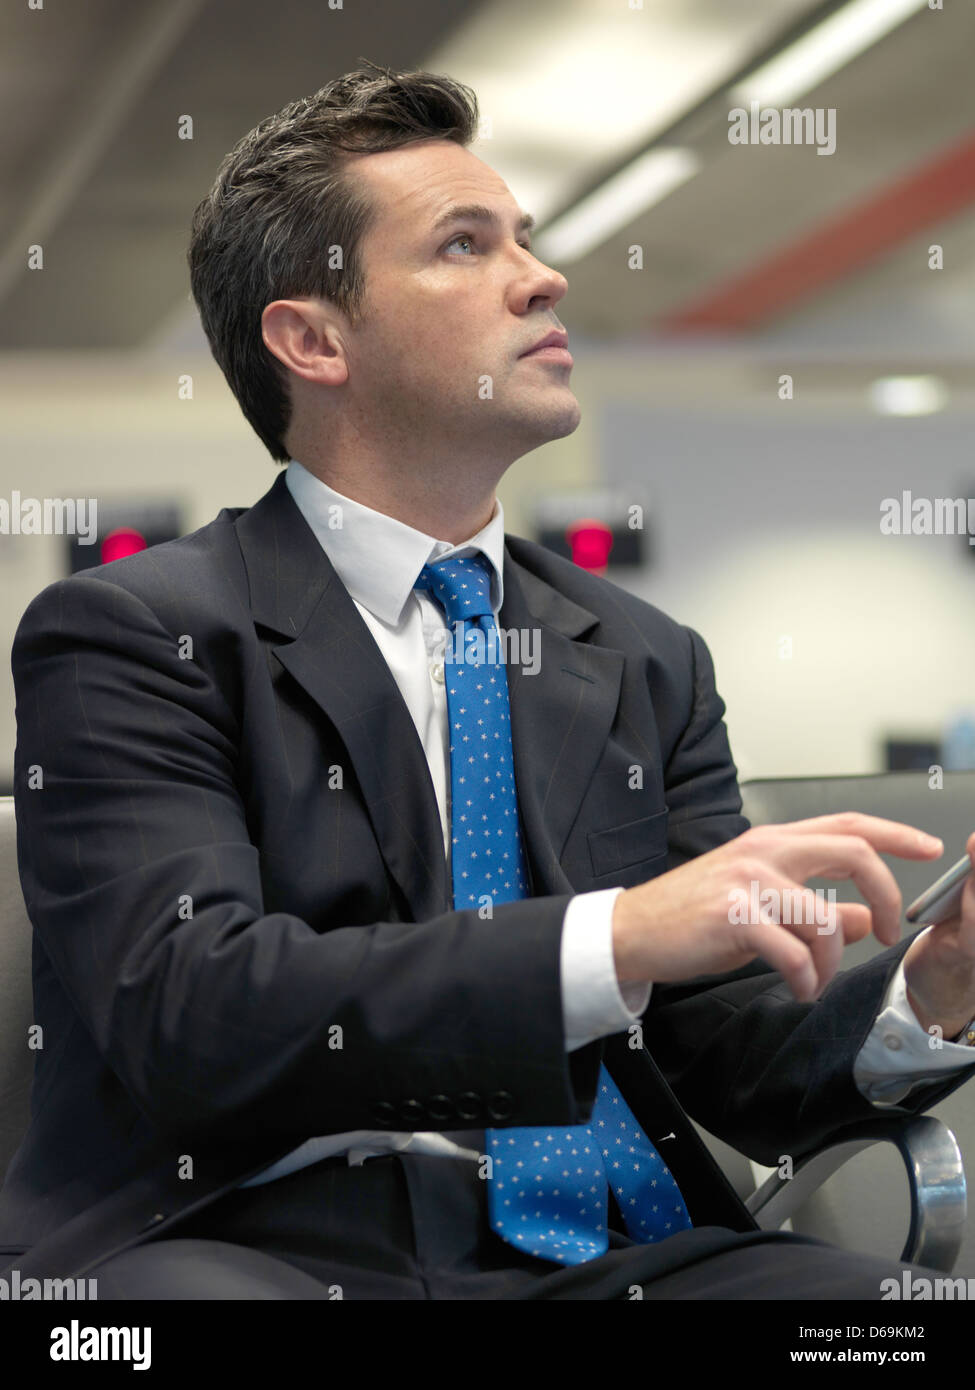 Businessman using cell phone in airport - Stock Image